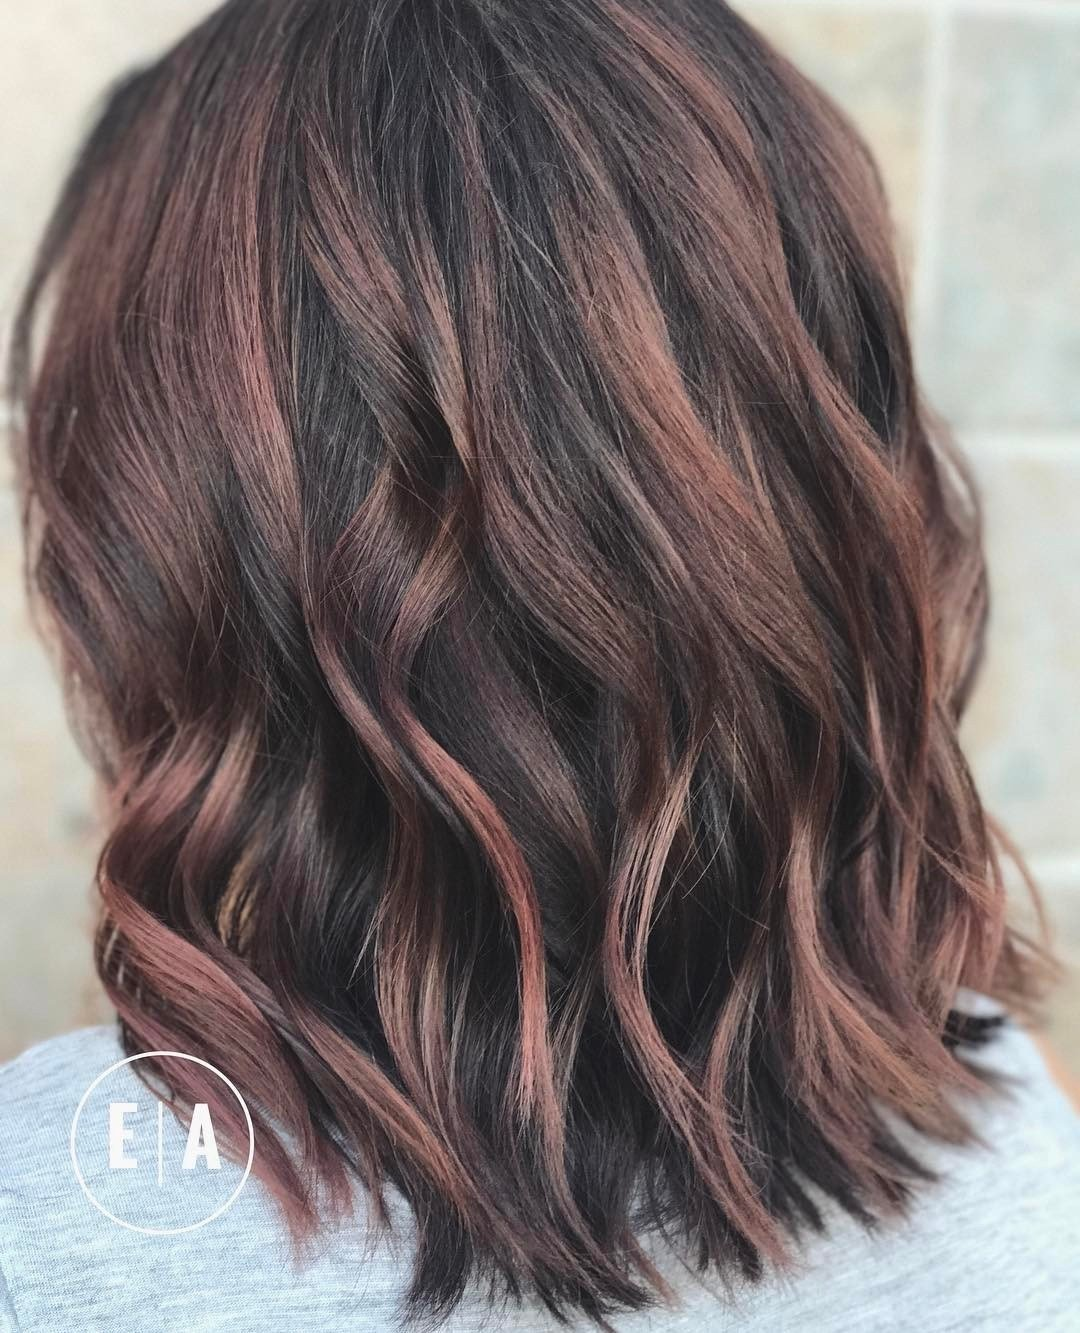 The Best 10 Balayage Hair Styles For Medium Length Hair 2019 Pictures